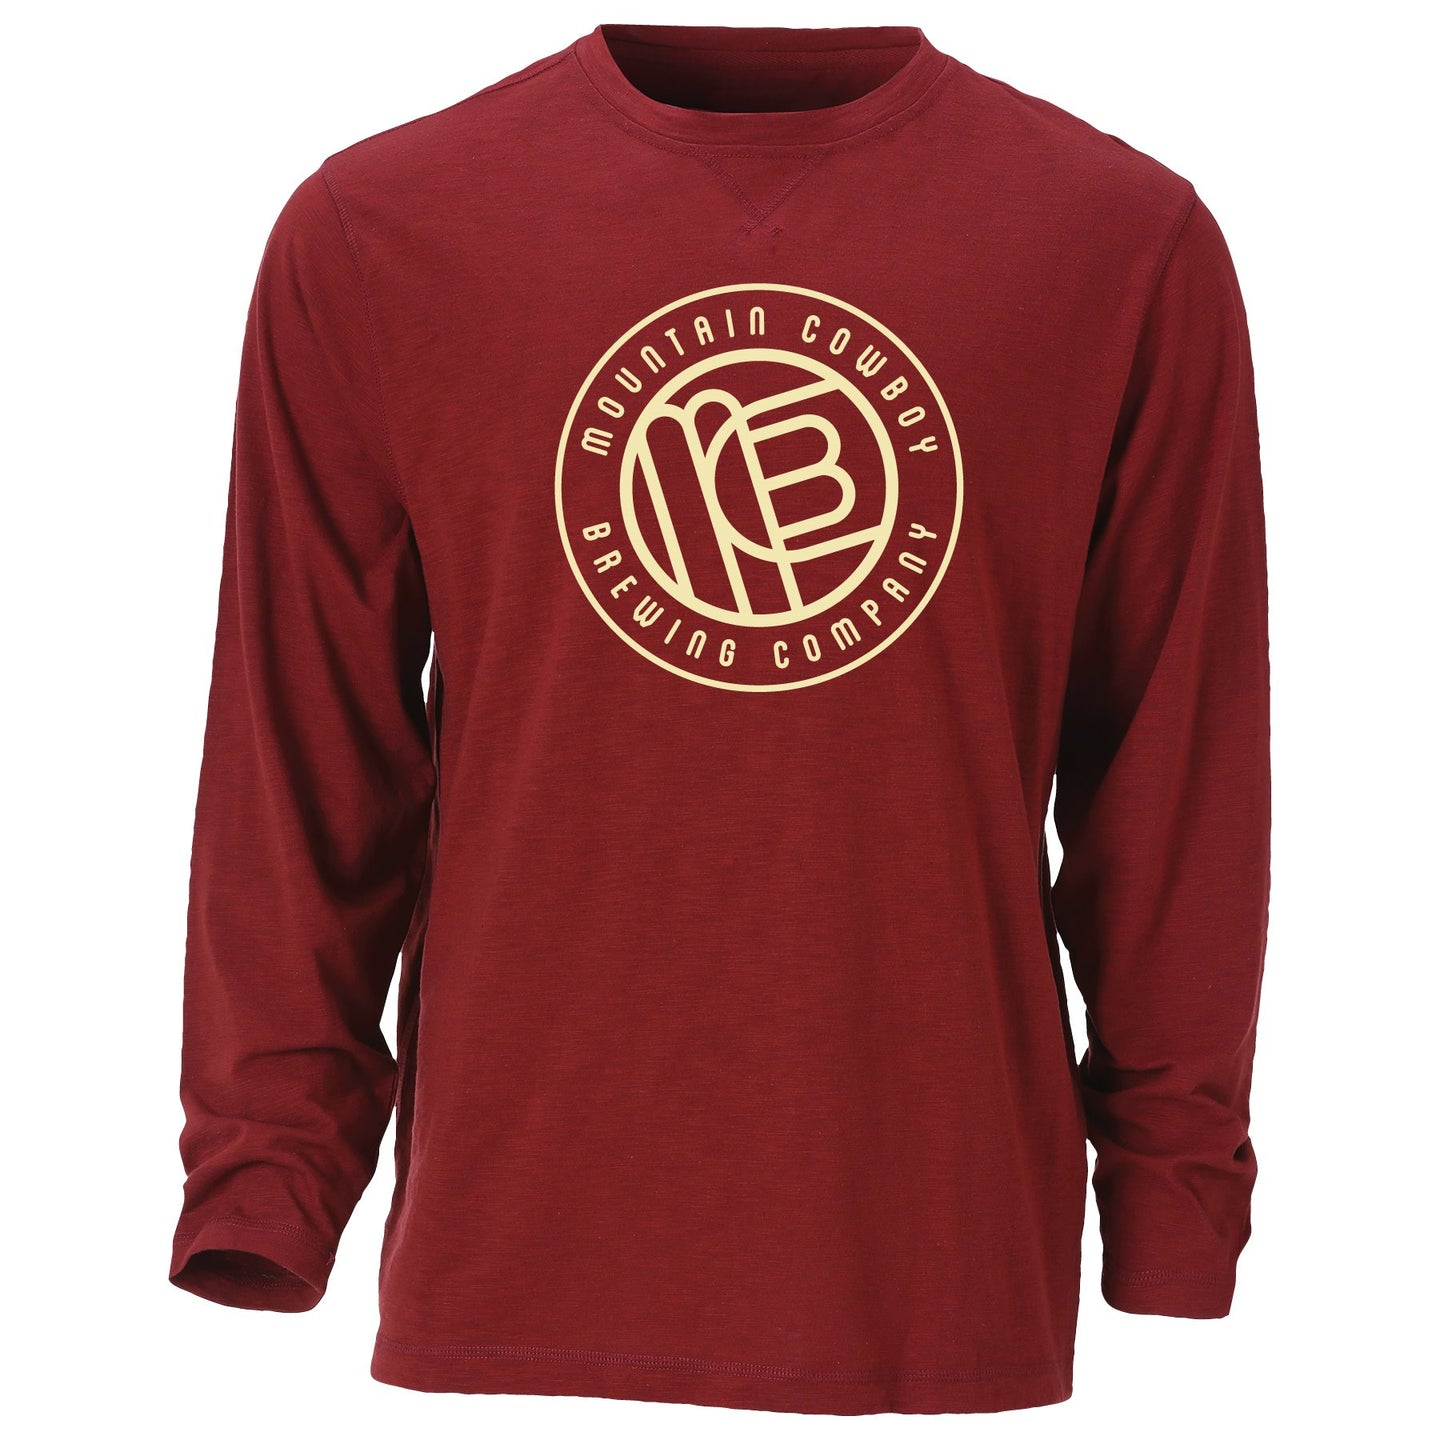 Men's Slub Crew L/S T-Shirt with Circle Logo